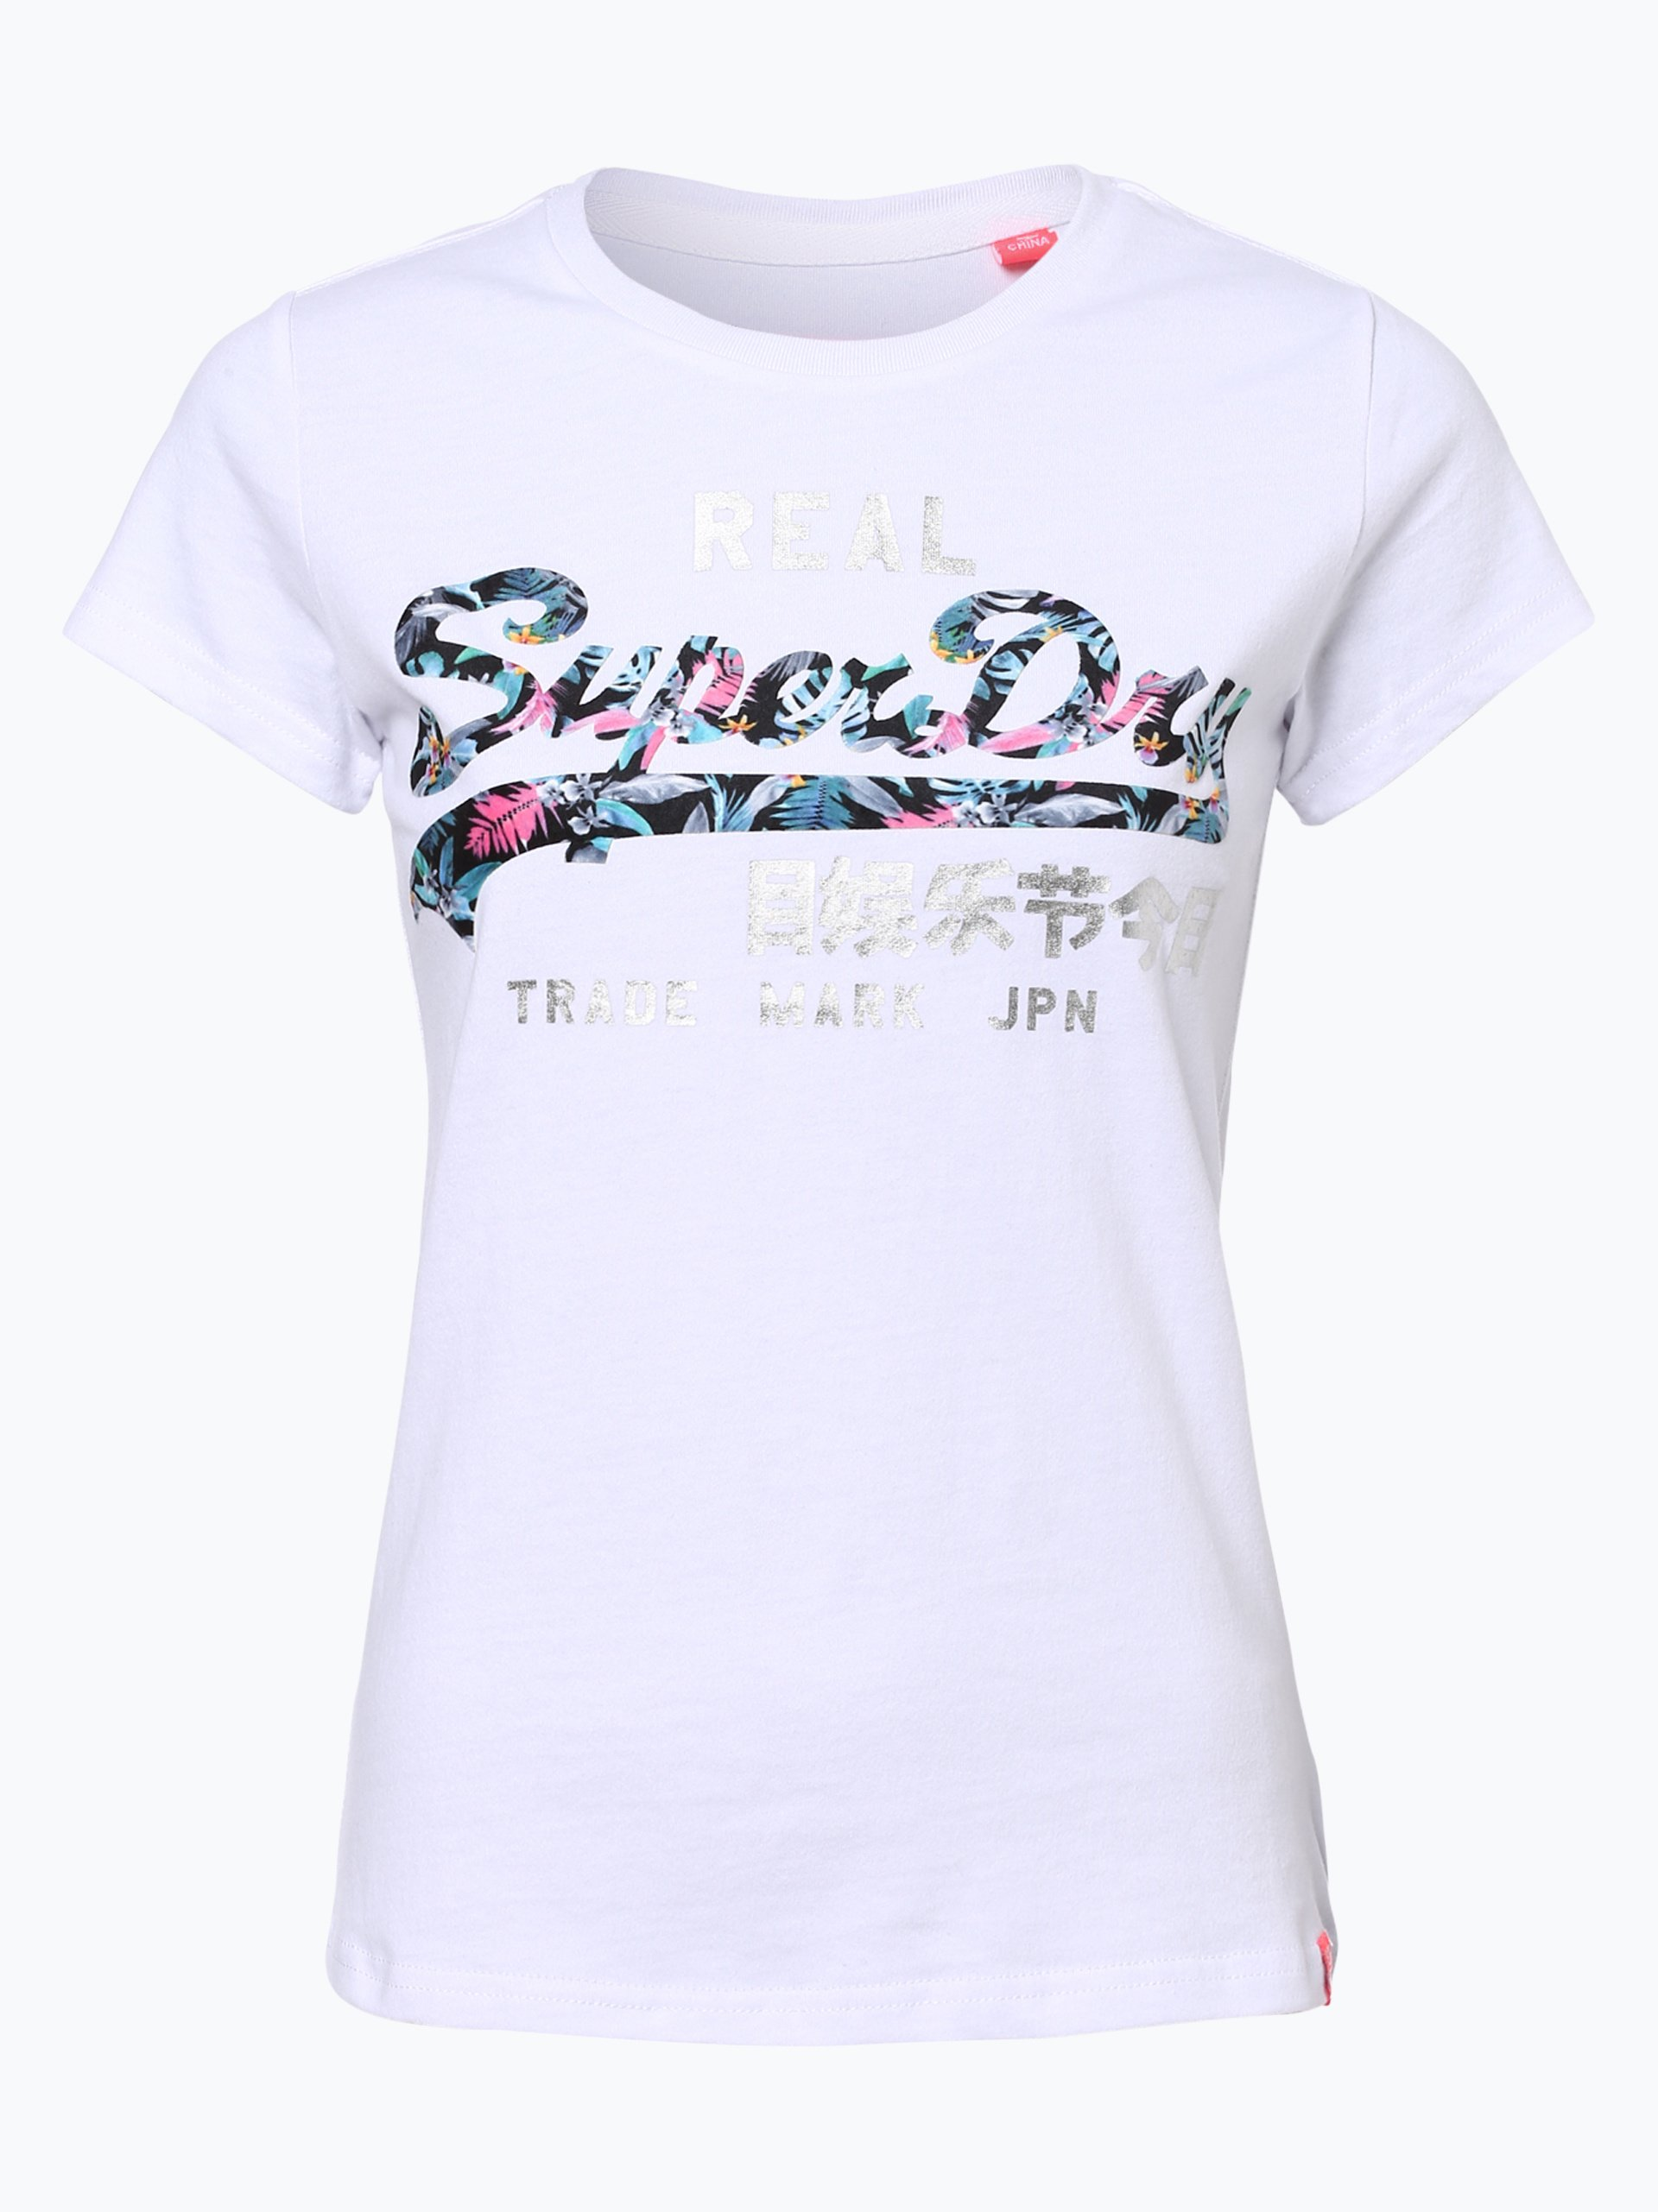 superdry damen t shirt wei gemustert online kaufen. Black Bedroom Furniture Sets. Home Design Ideas